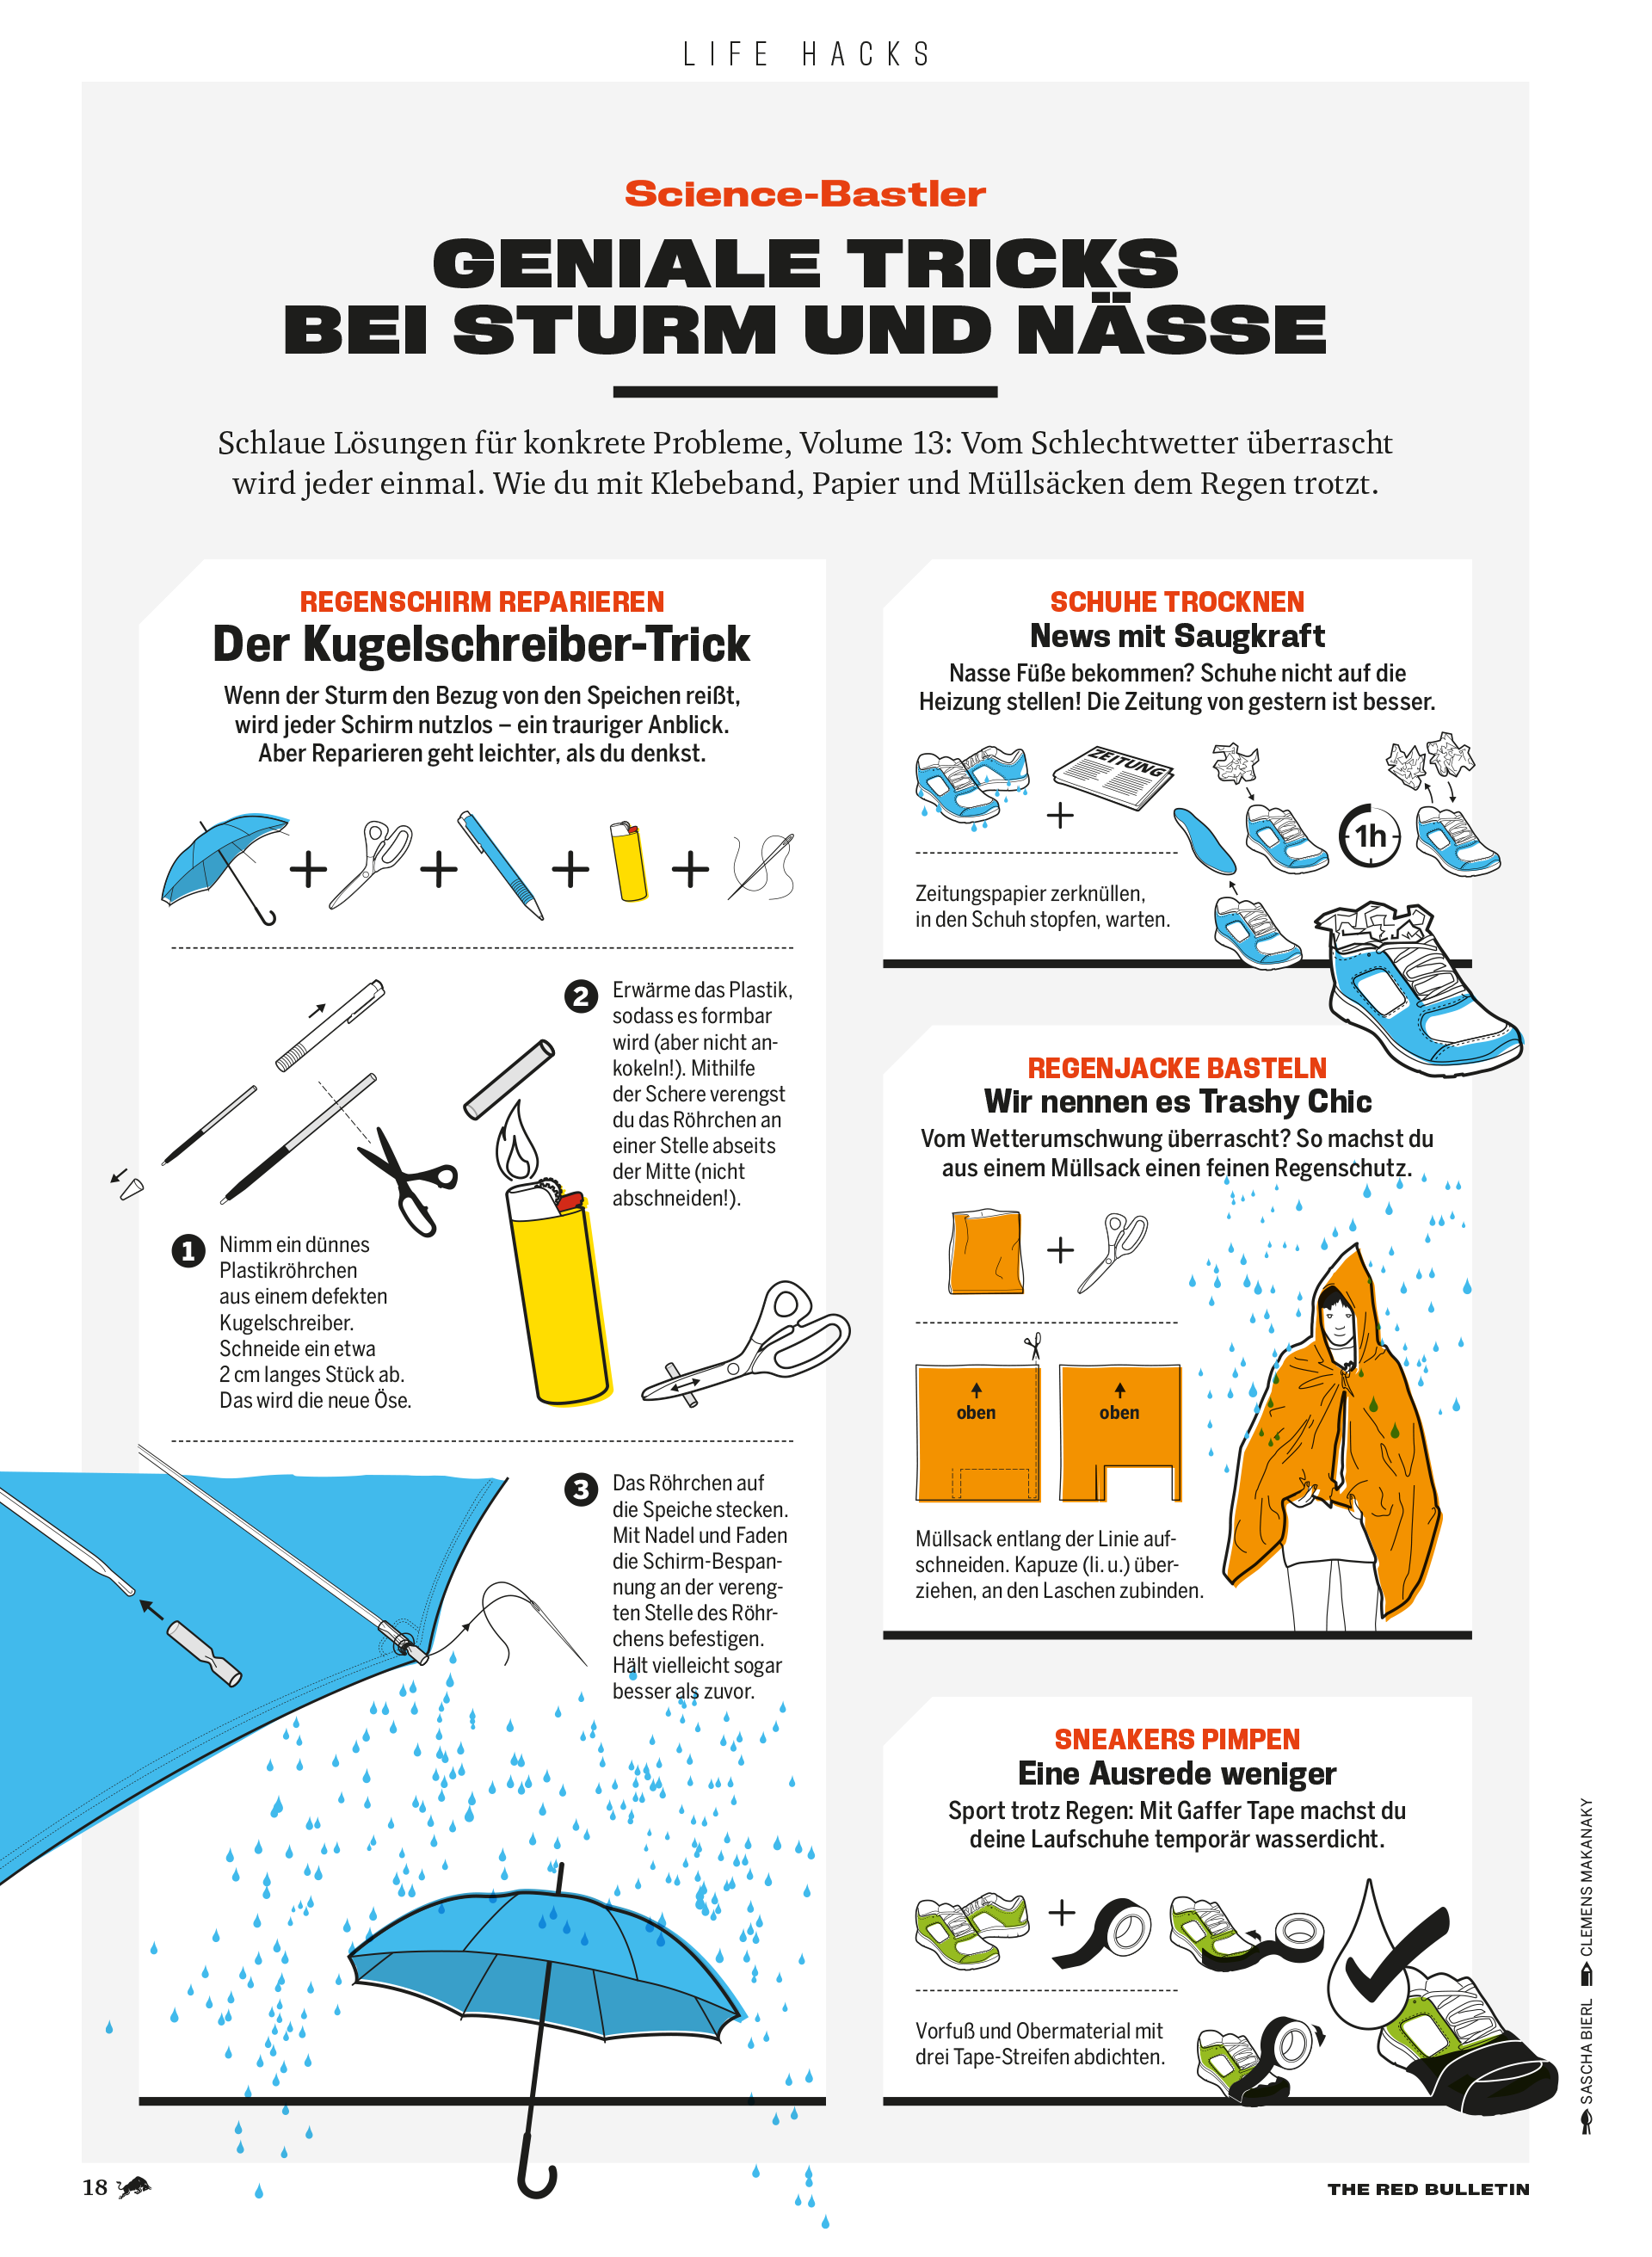 Illustrationen Lifehacks für Regentage